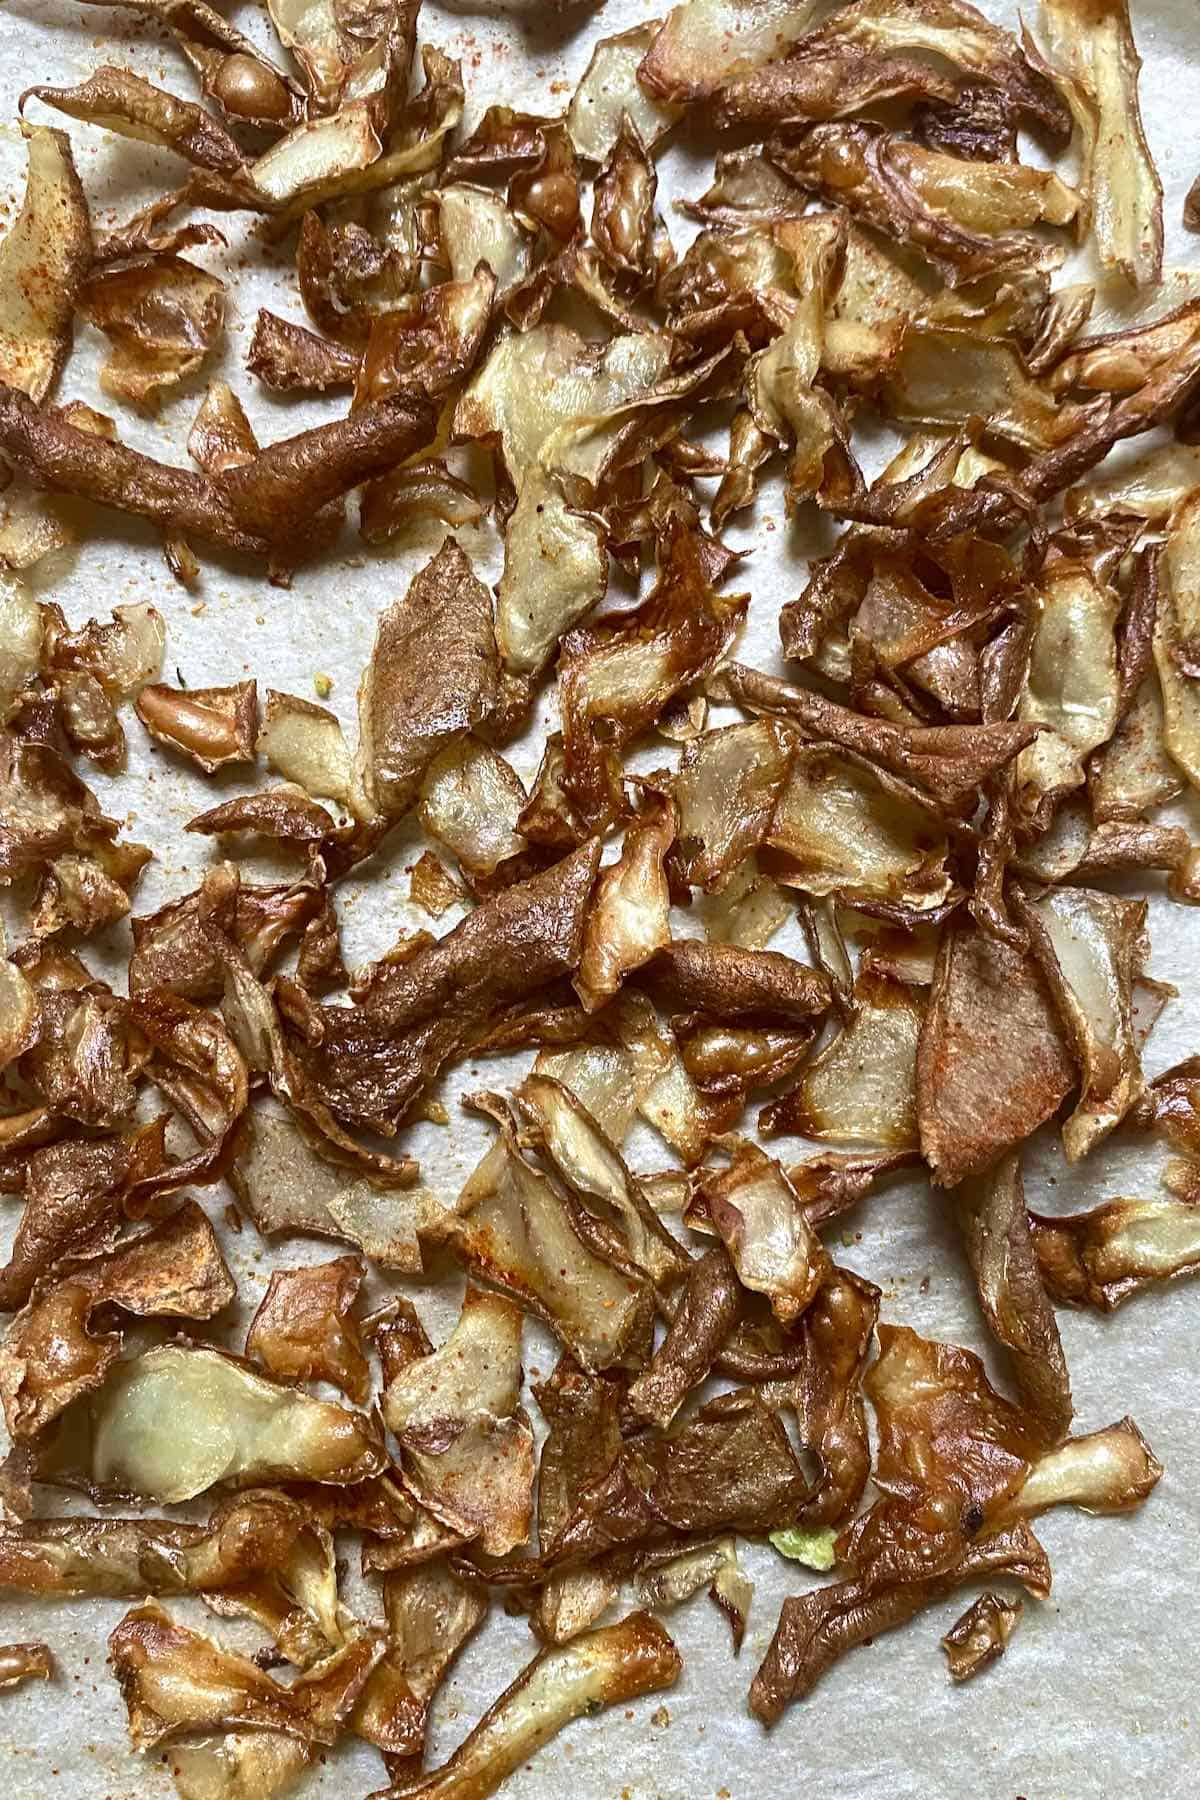 Potato peel chips on a flat surface